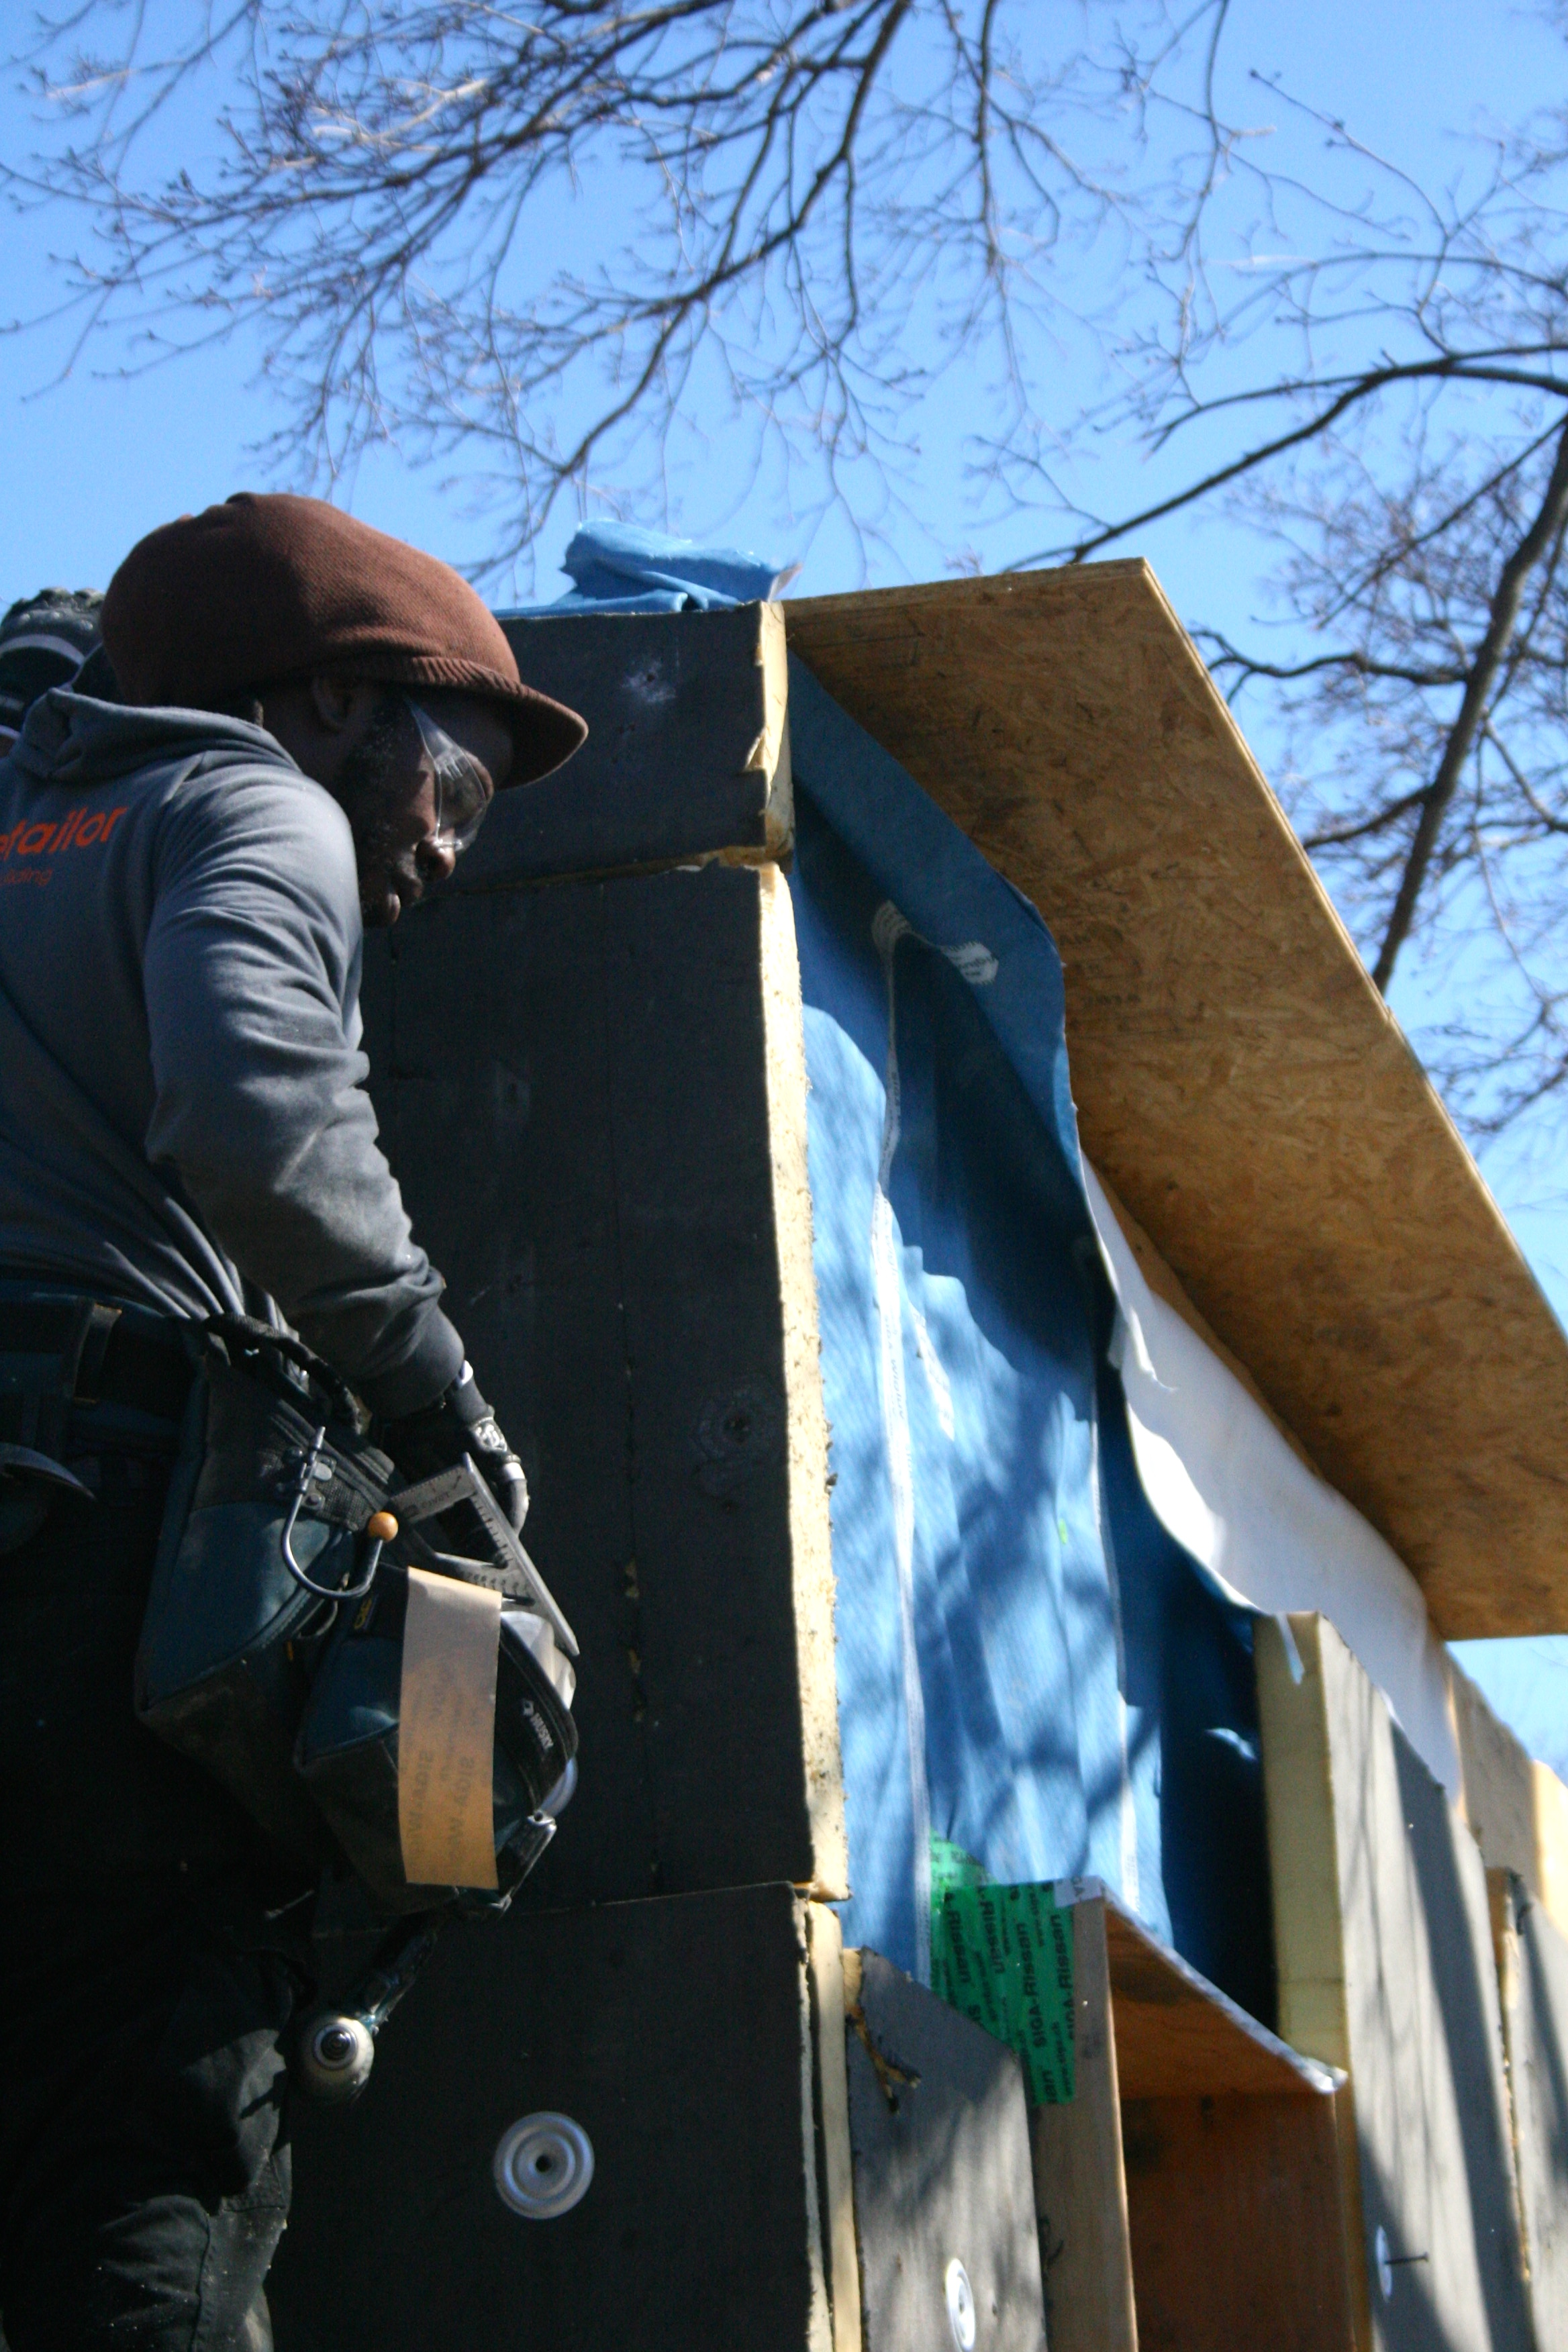 insulation going up